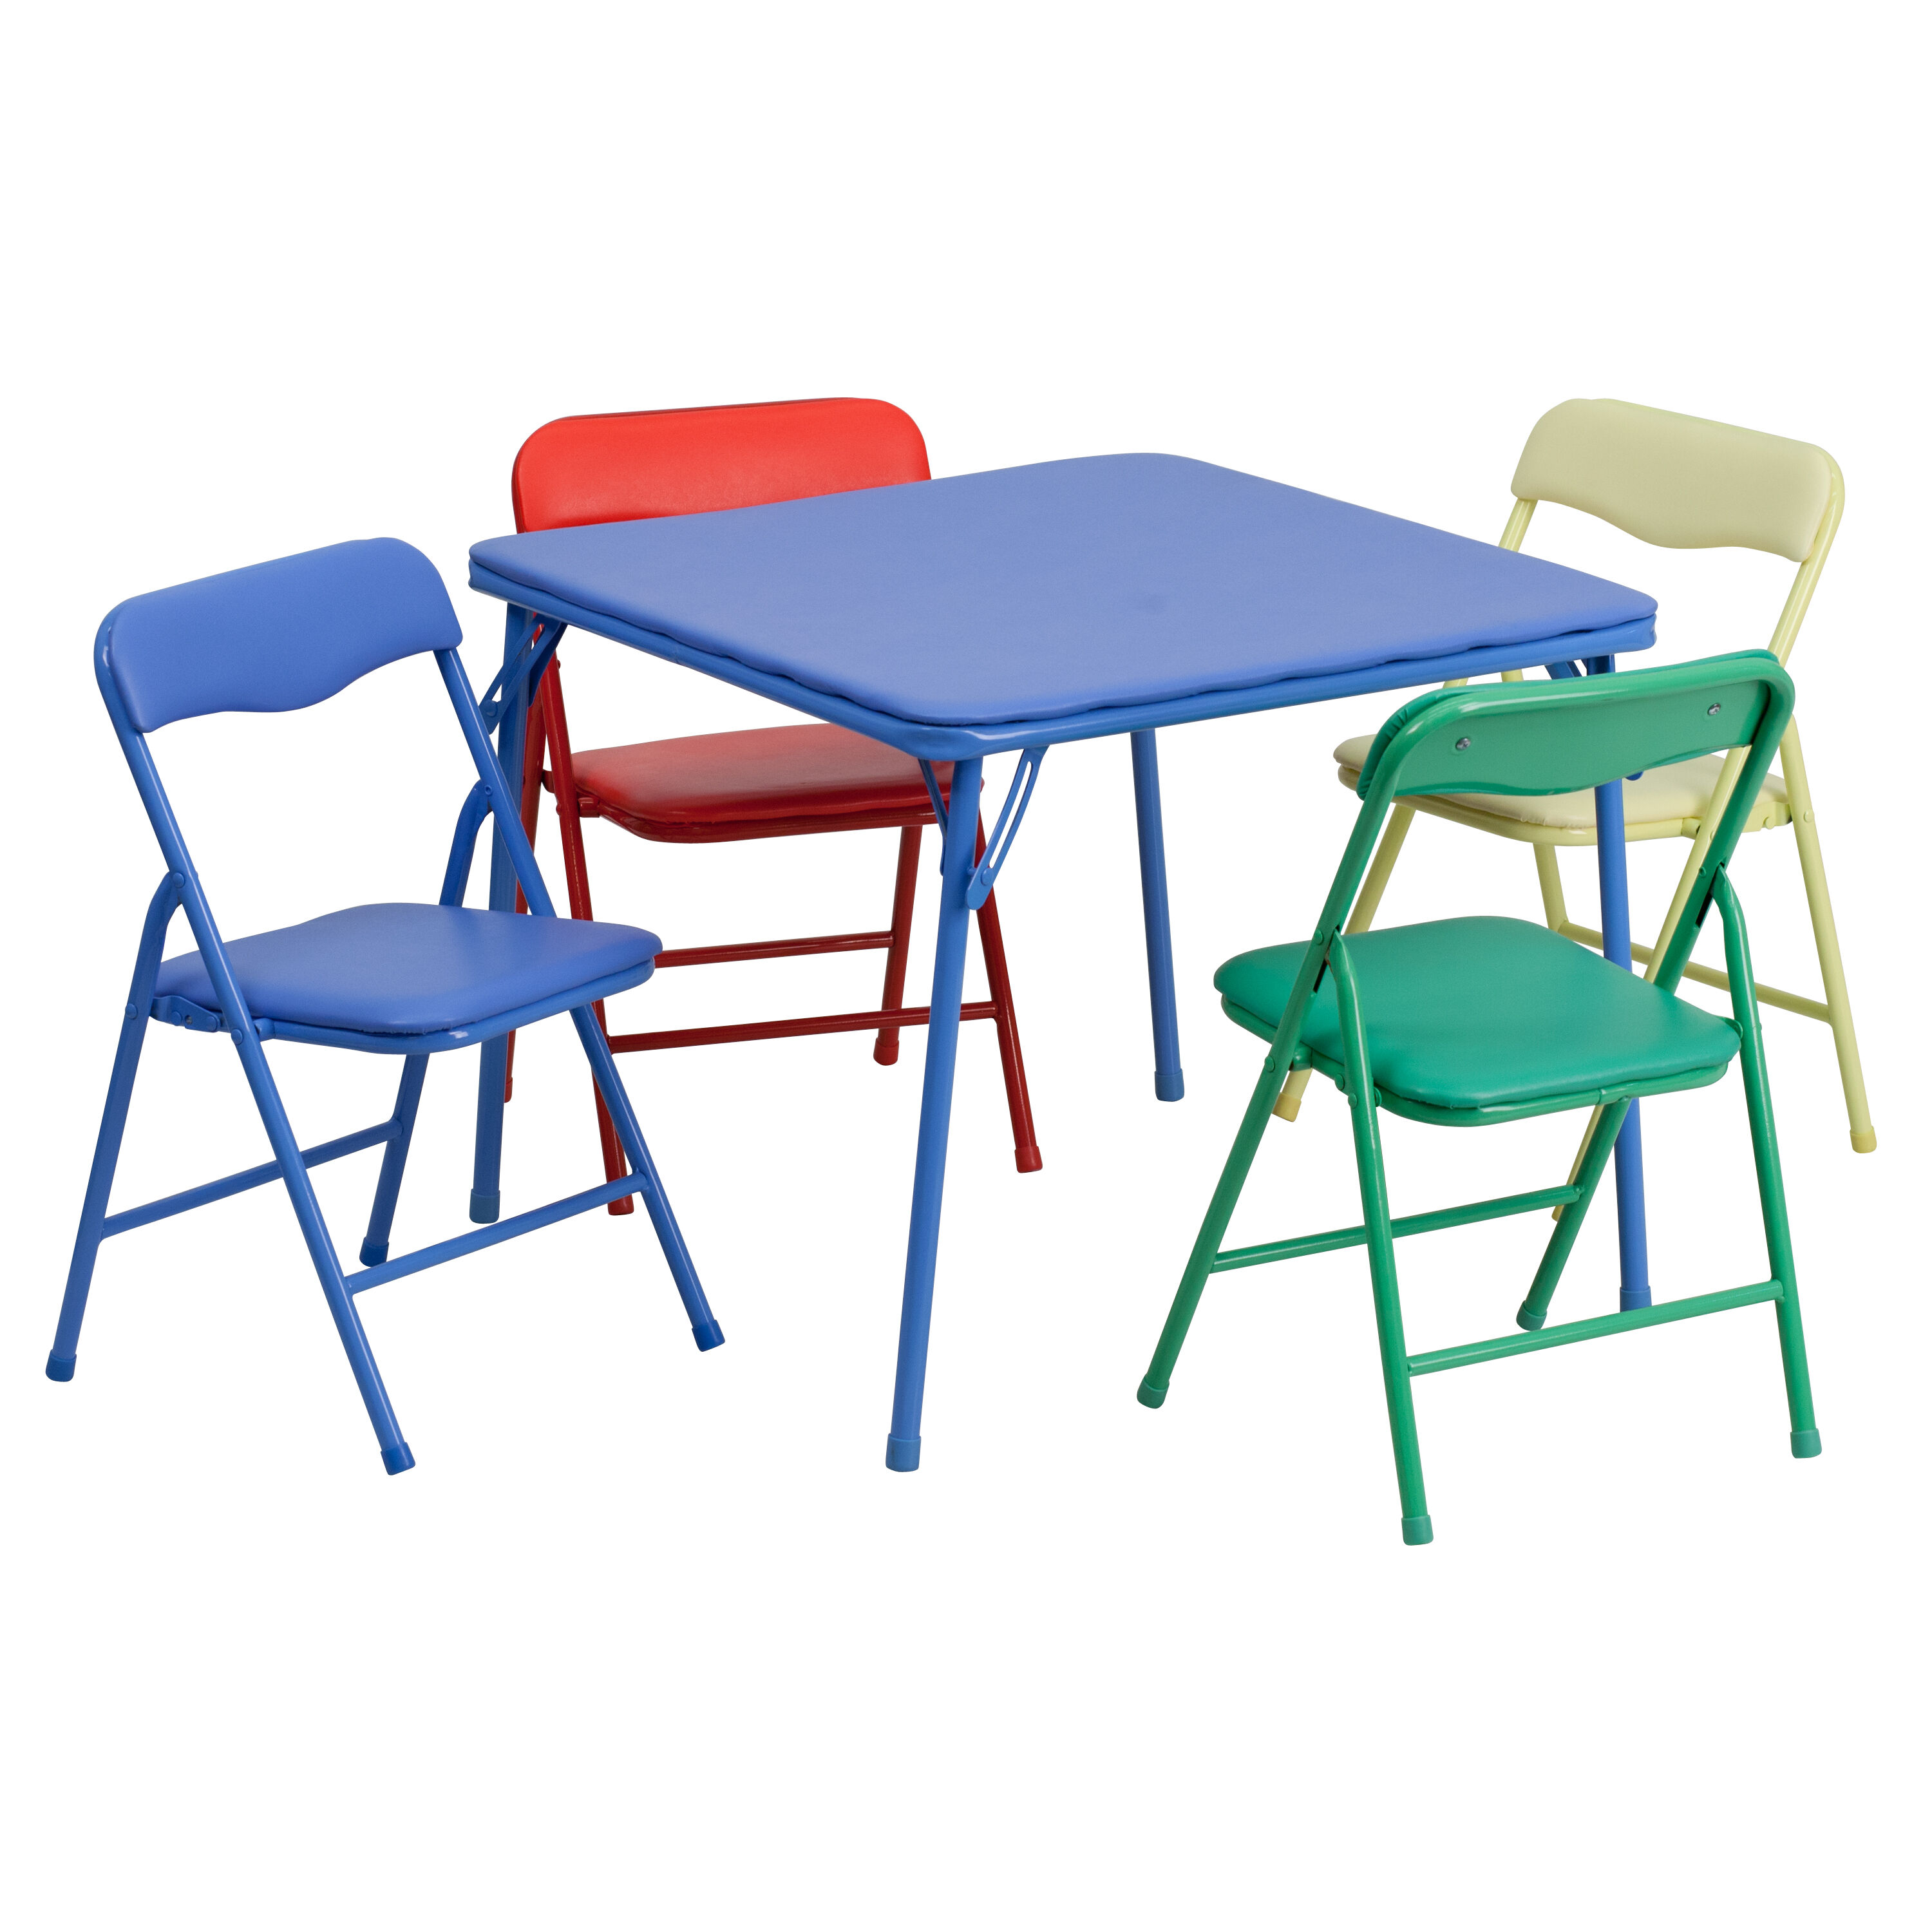 church banquet tables and chairs folding swivel hunting chair 5 pc kids table set jb 9 kid gg